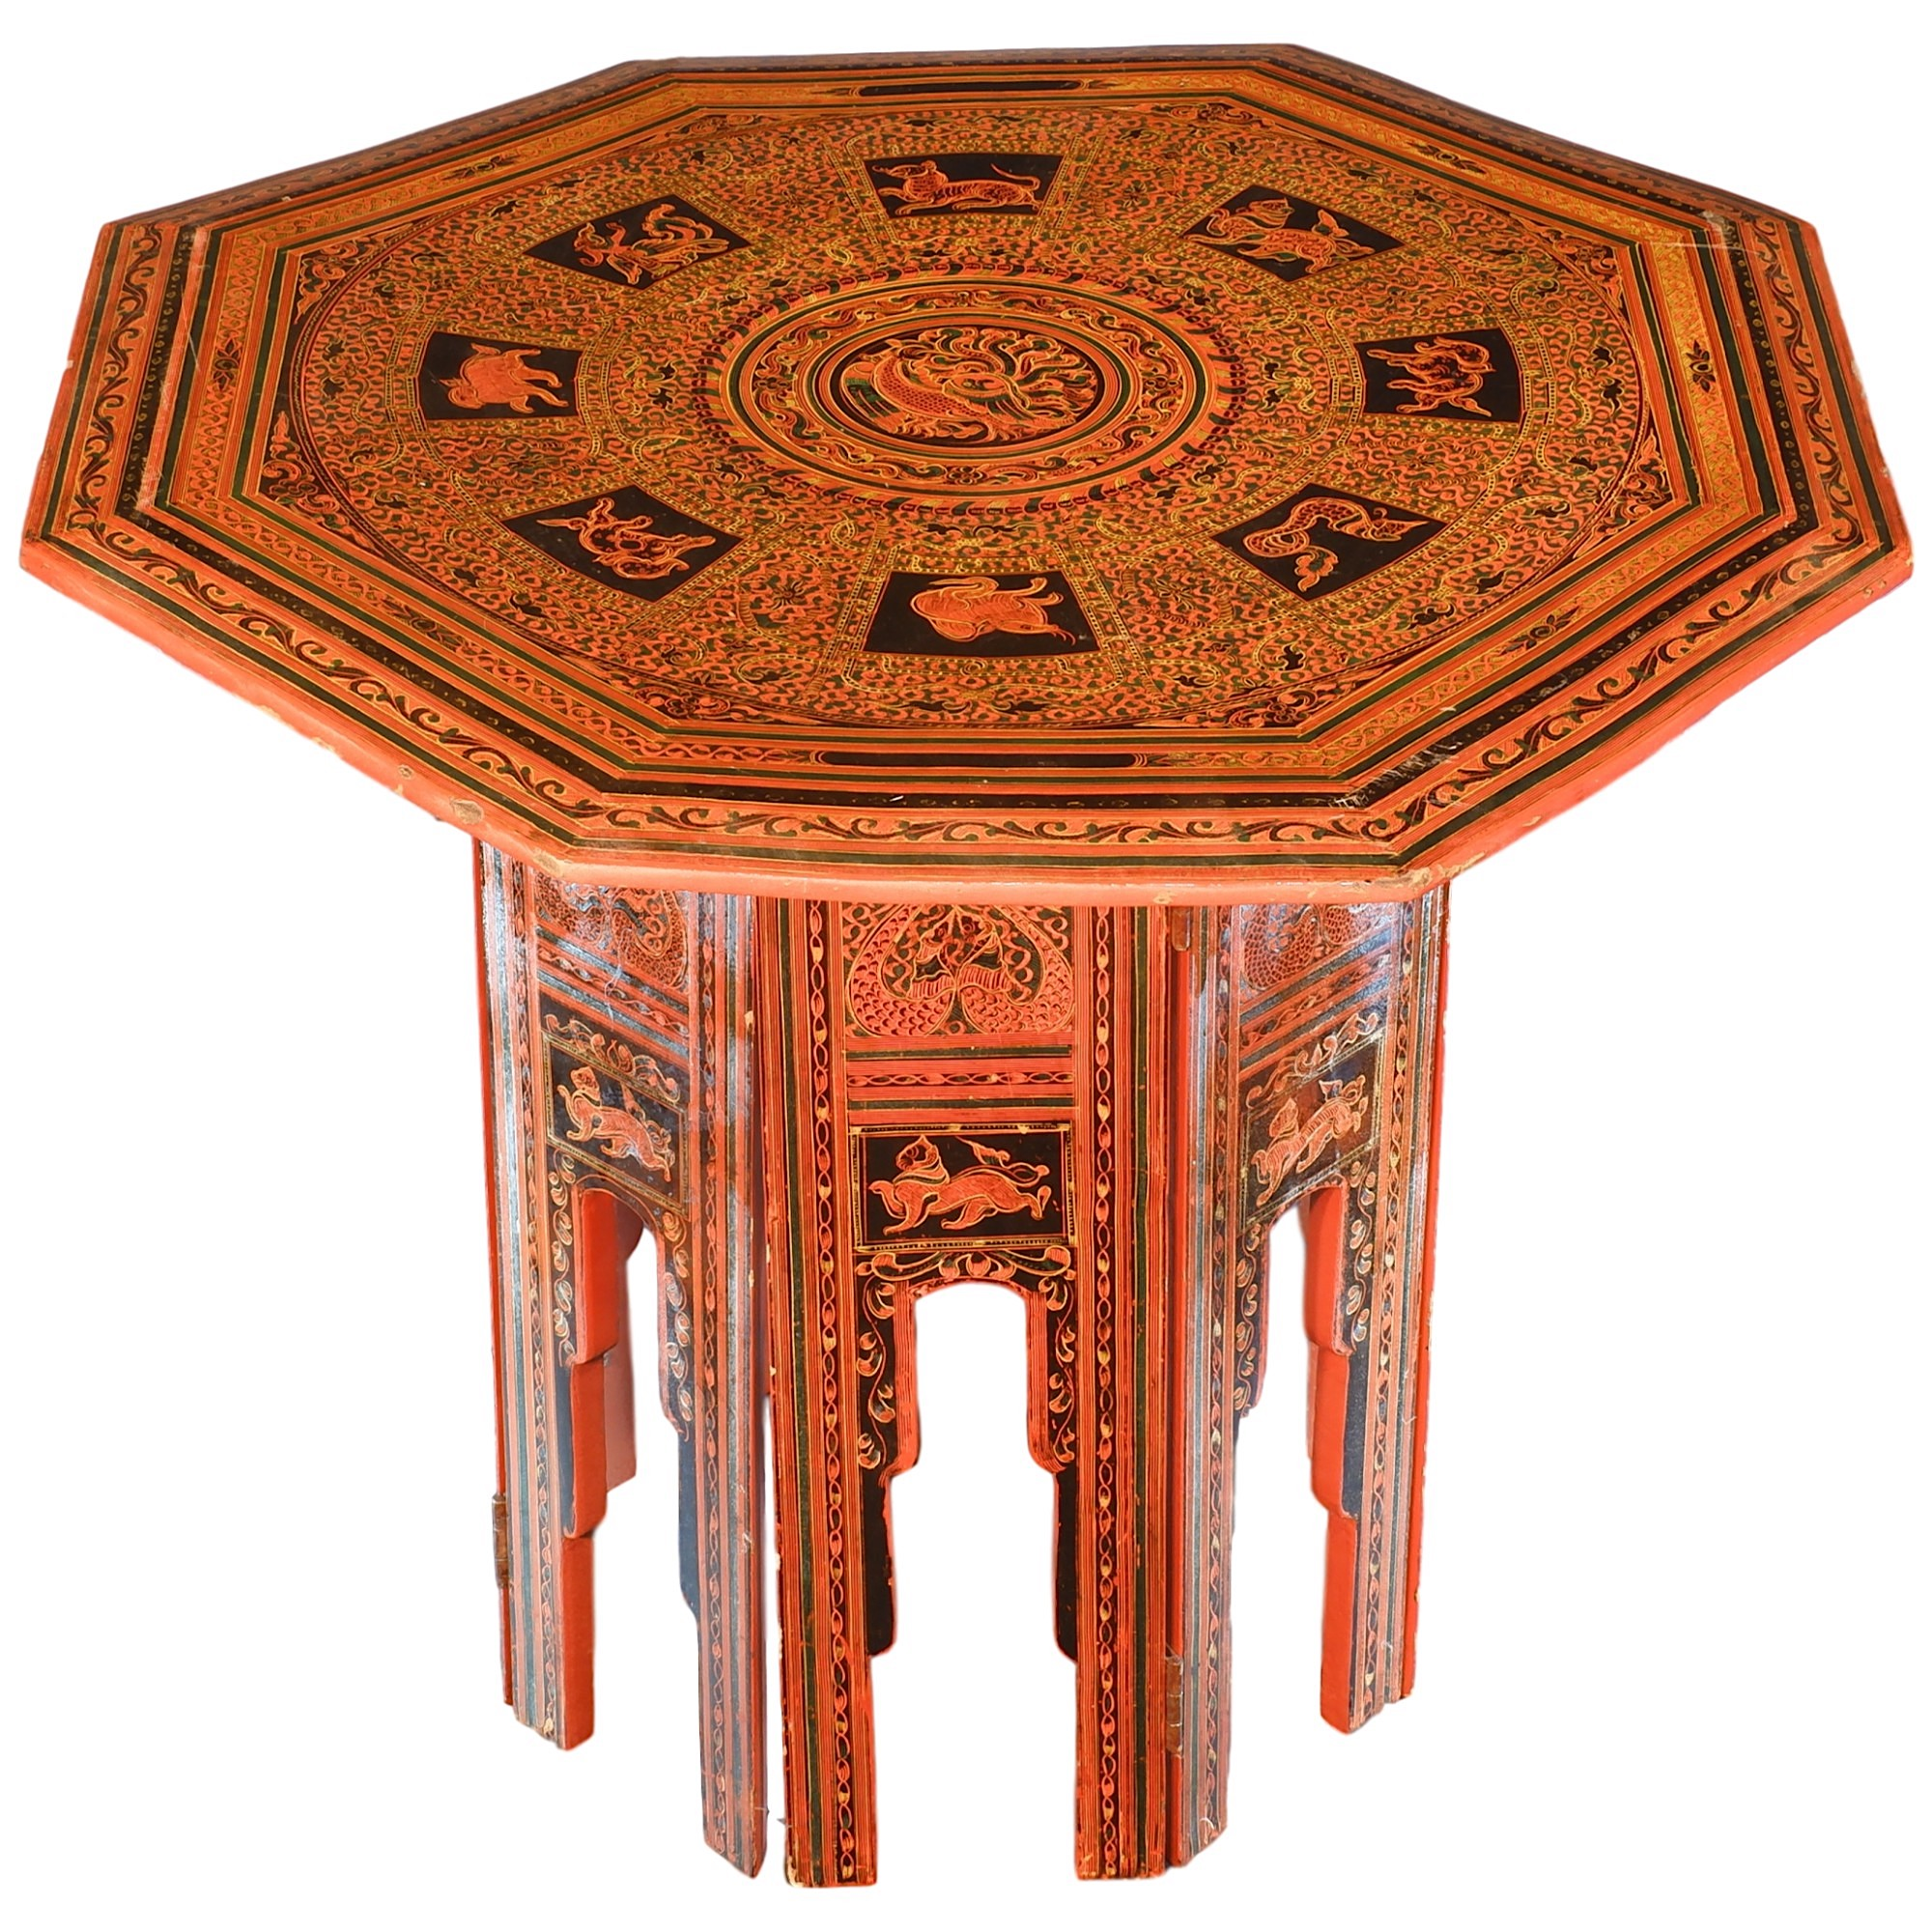 'Burmese Folding Octagonal Lacquer Table'